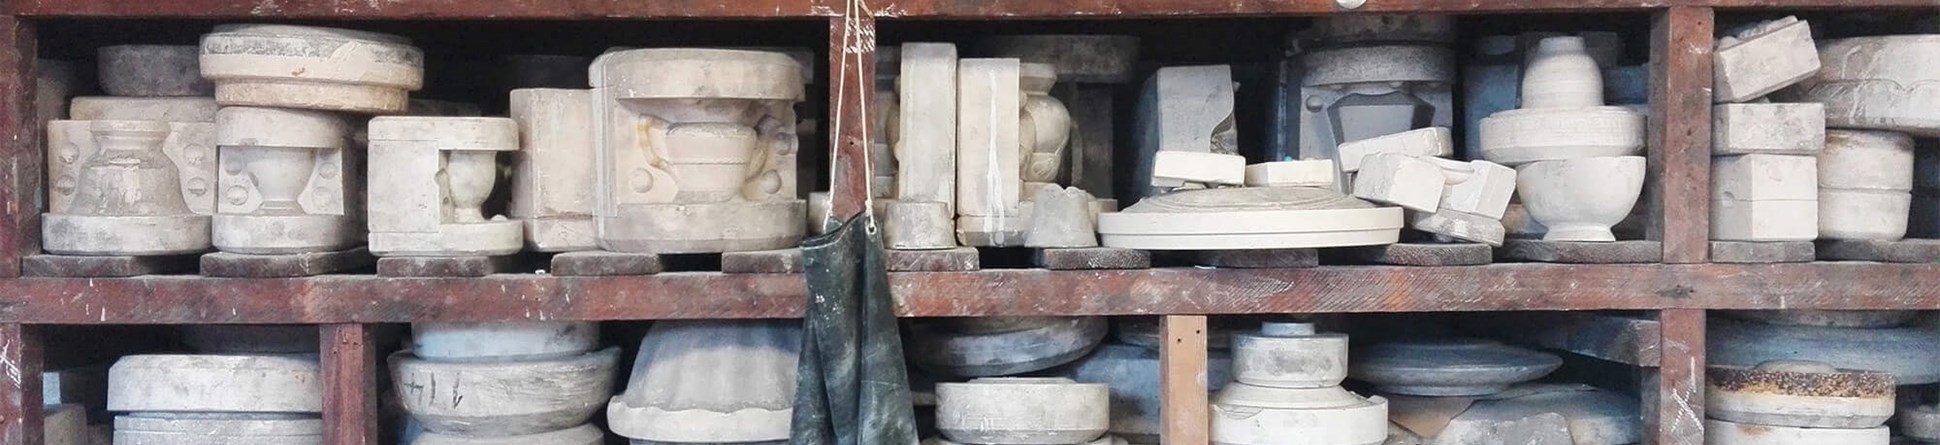 Photograph of shelves in a workshop stacked with plaster moulds for casting tableware ceramics. Varying sizes of moulds for teapots, bowls and cups are on display.